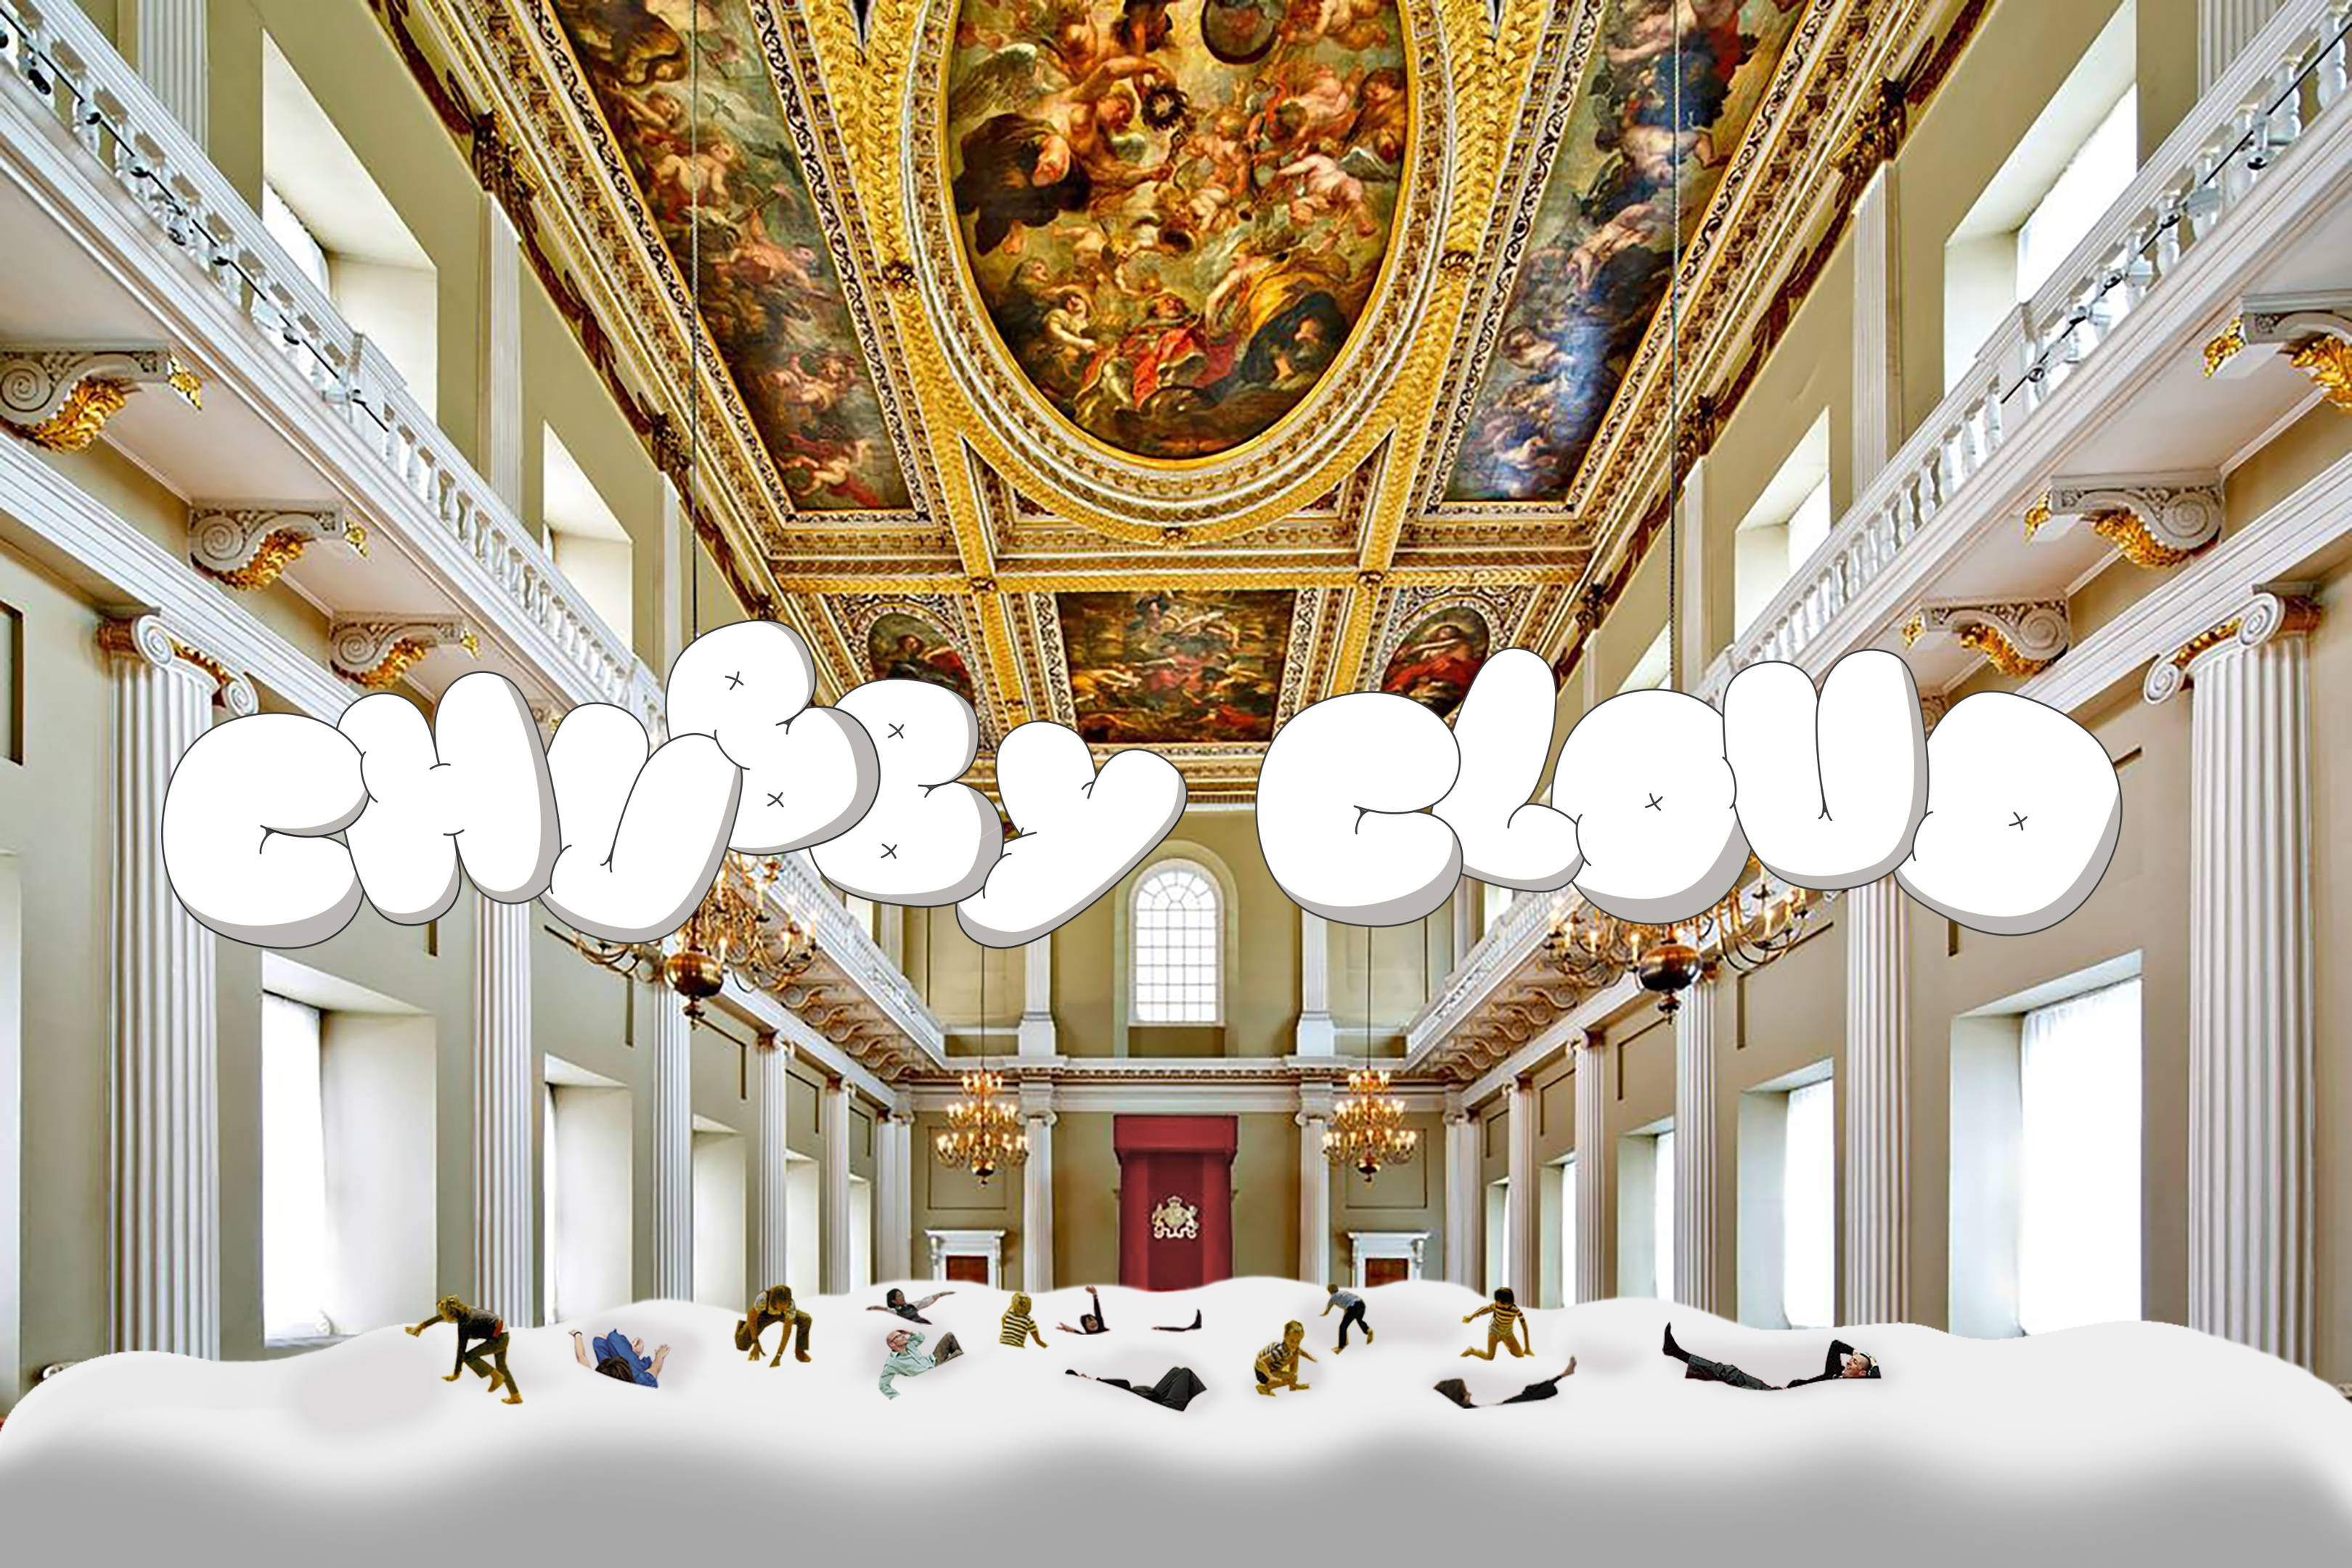 Anya Hindmarch Chubby Clouds What To Expect From The Immersive London Fashion Week Experience British Vogue